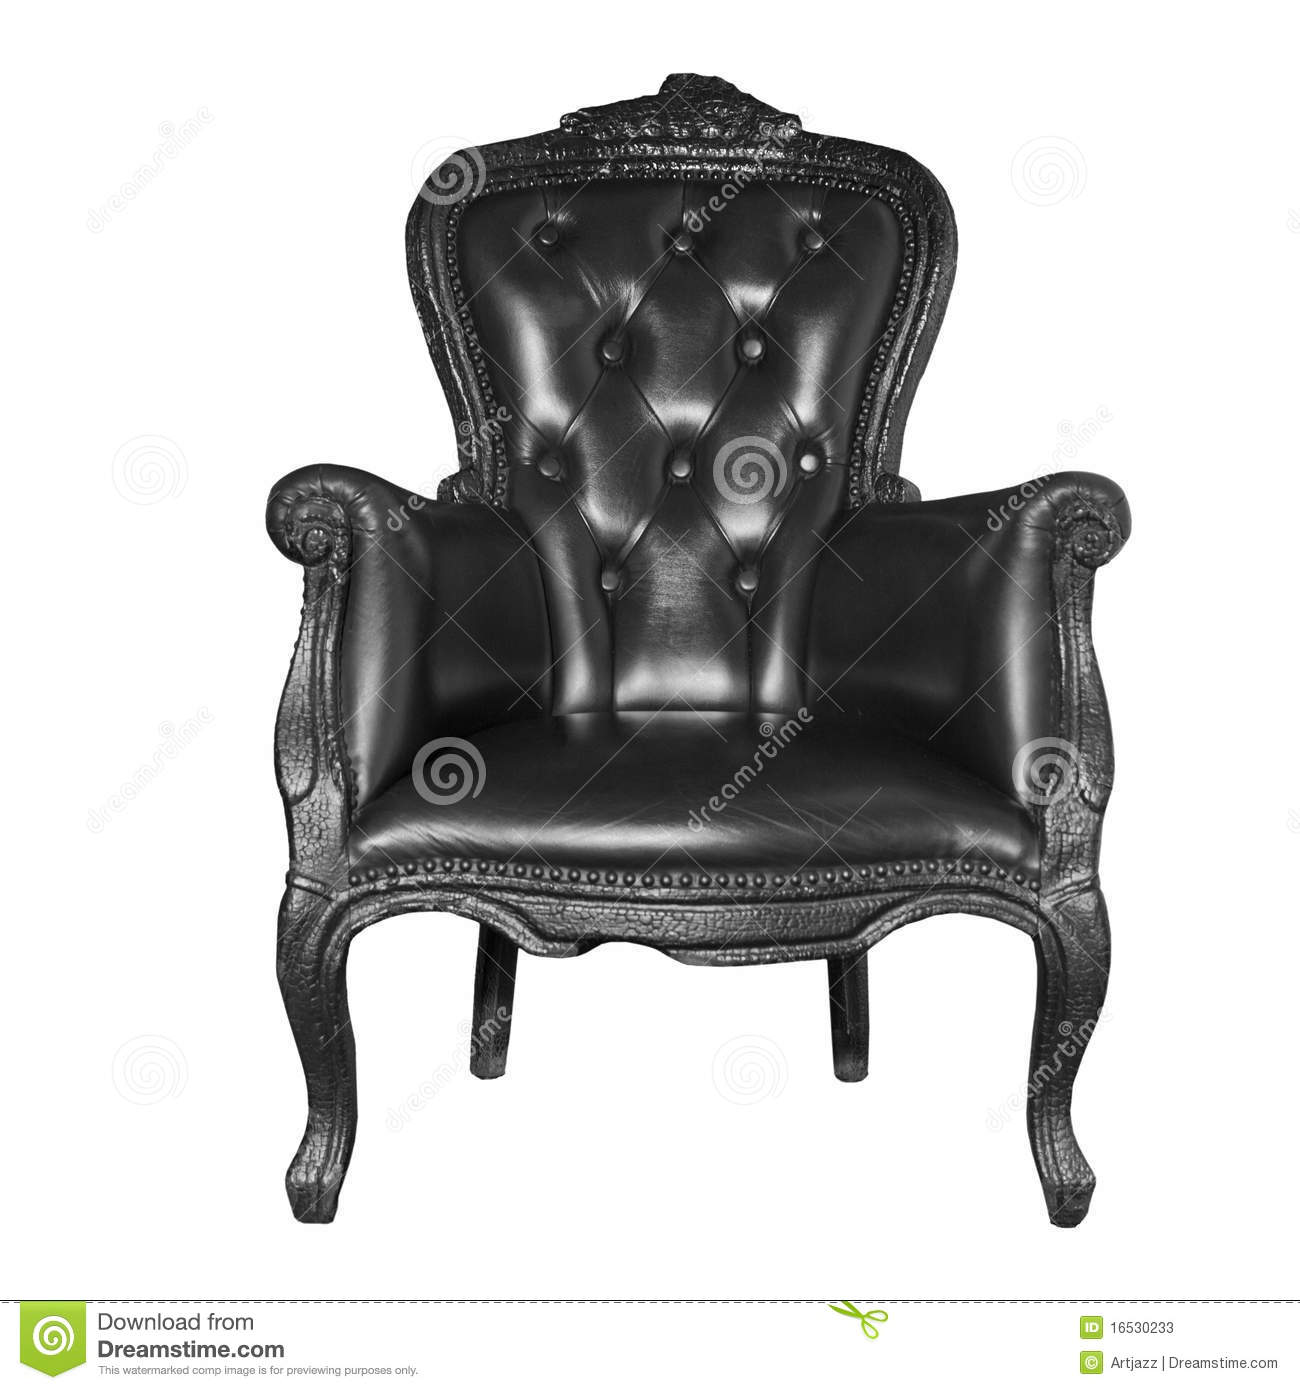 Antique black leather chair - Antique Black Leather Chair Stock Image - Image Of Antique